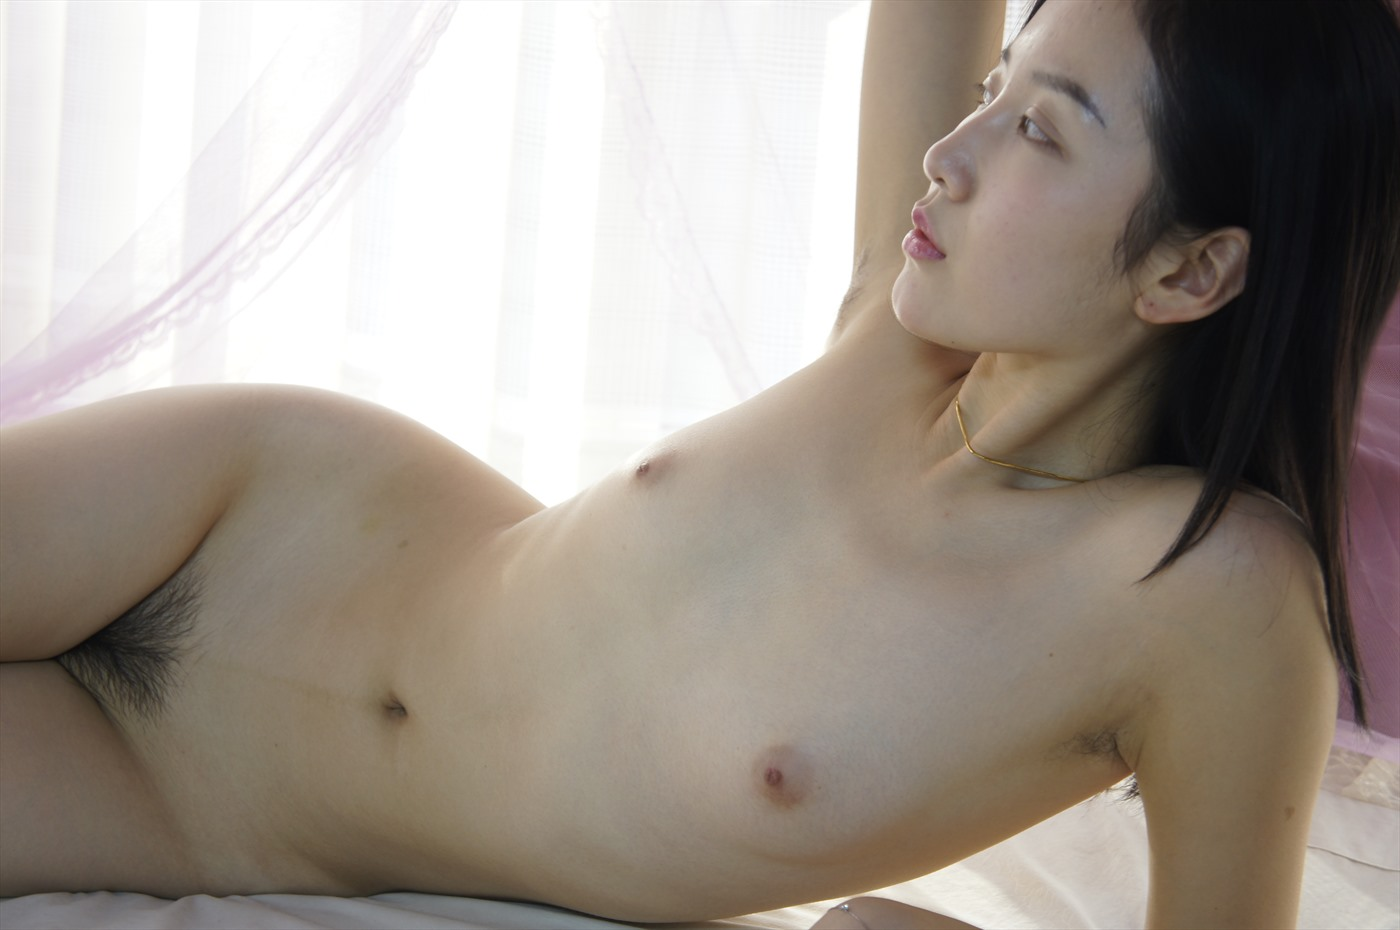 china girl xixi nude dsc2319 free erotic pictures